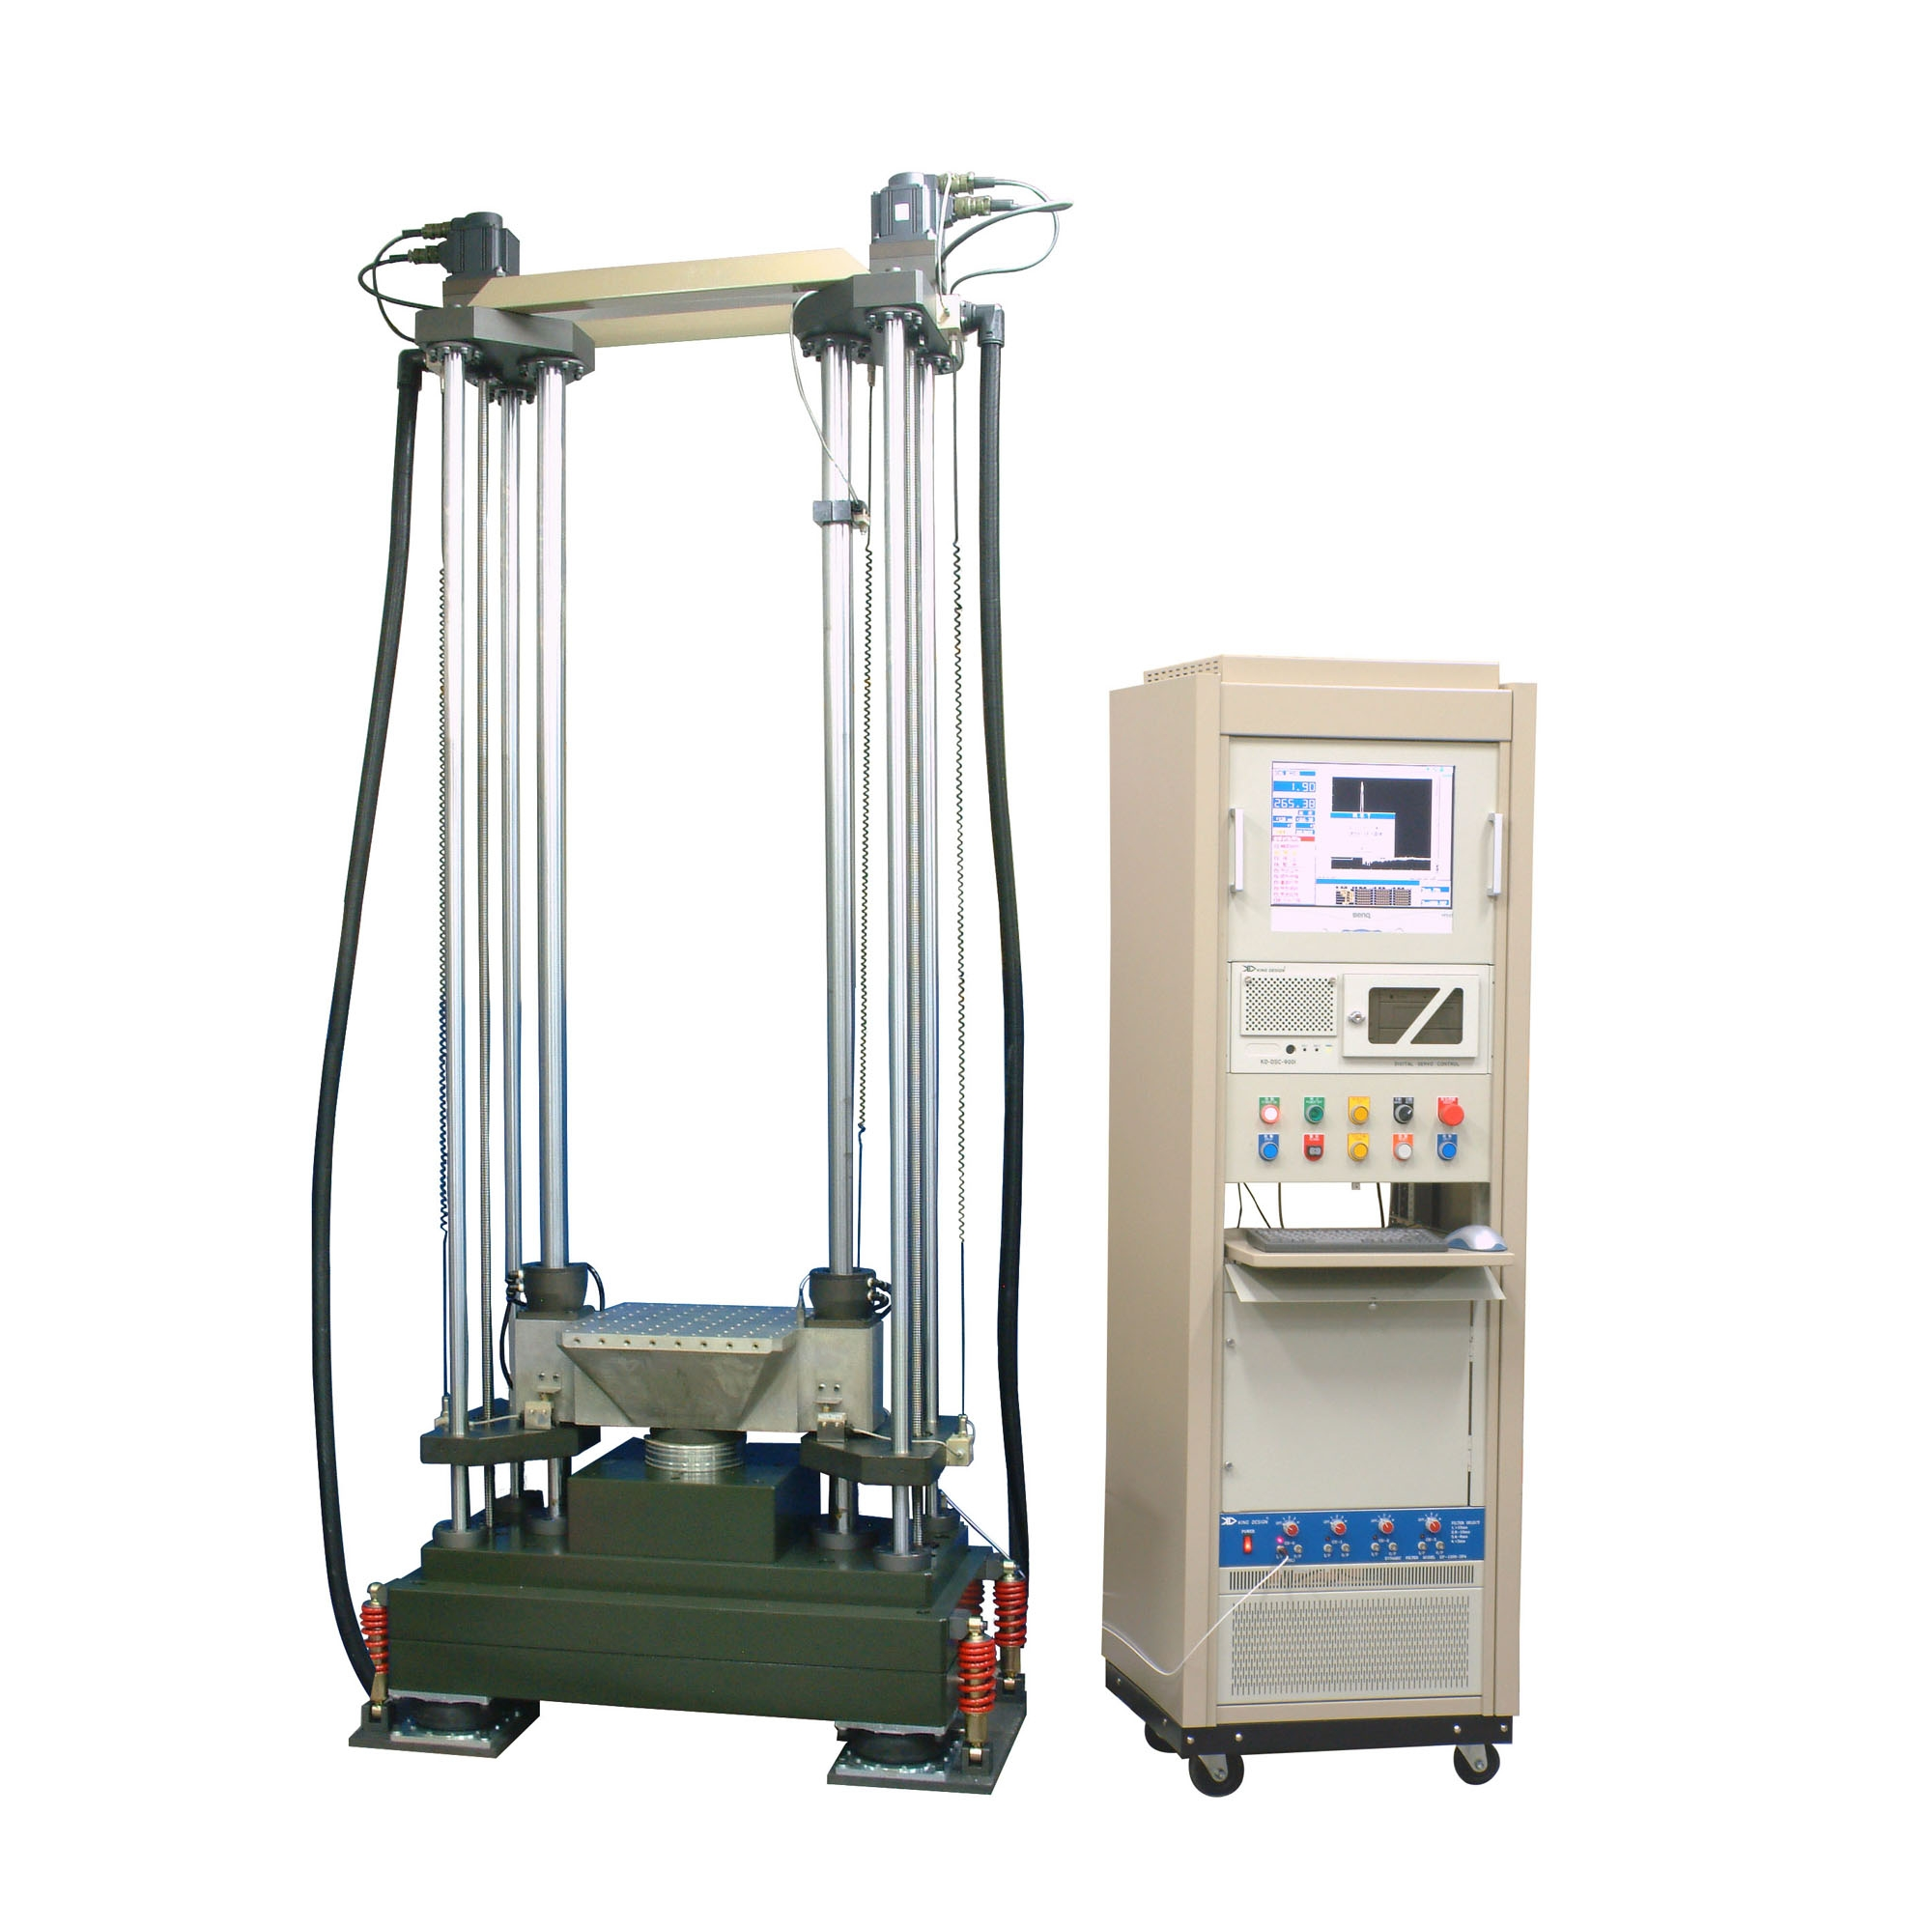 Dp 1200 Free Fall Shock Machine Thp Systems